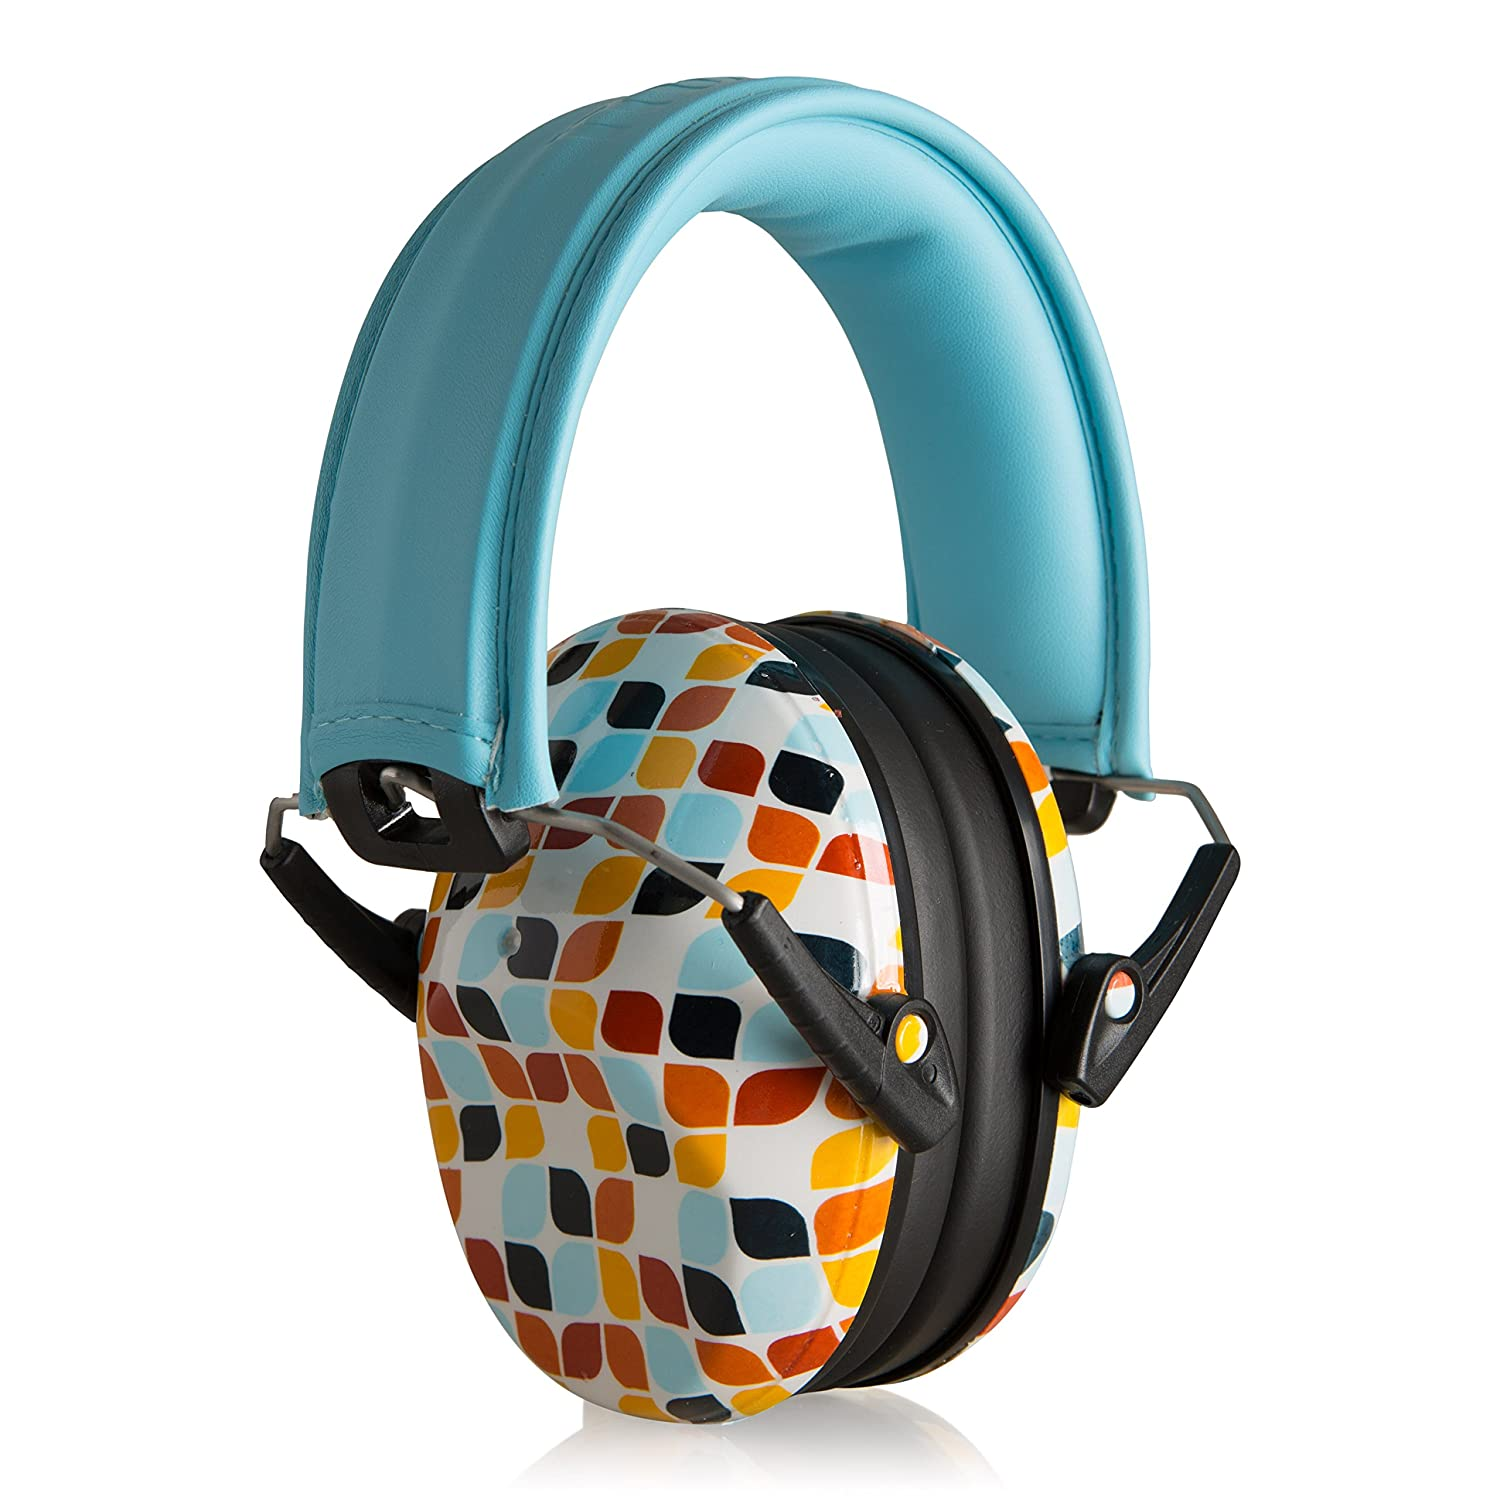 Muted Designer Hearing Protection for Infants & Kids - Adjustable Children's Ear Muffs from Toddler to Teen - Geometric Leaf - Baby Noise Cancelling Headphones